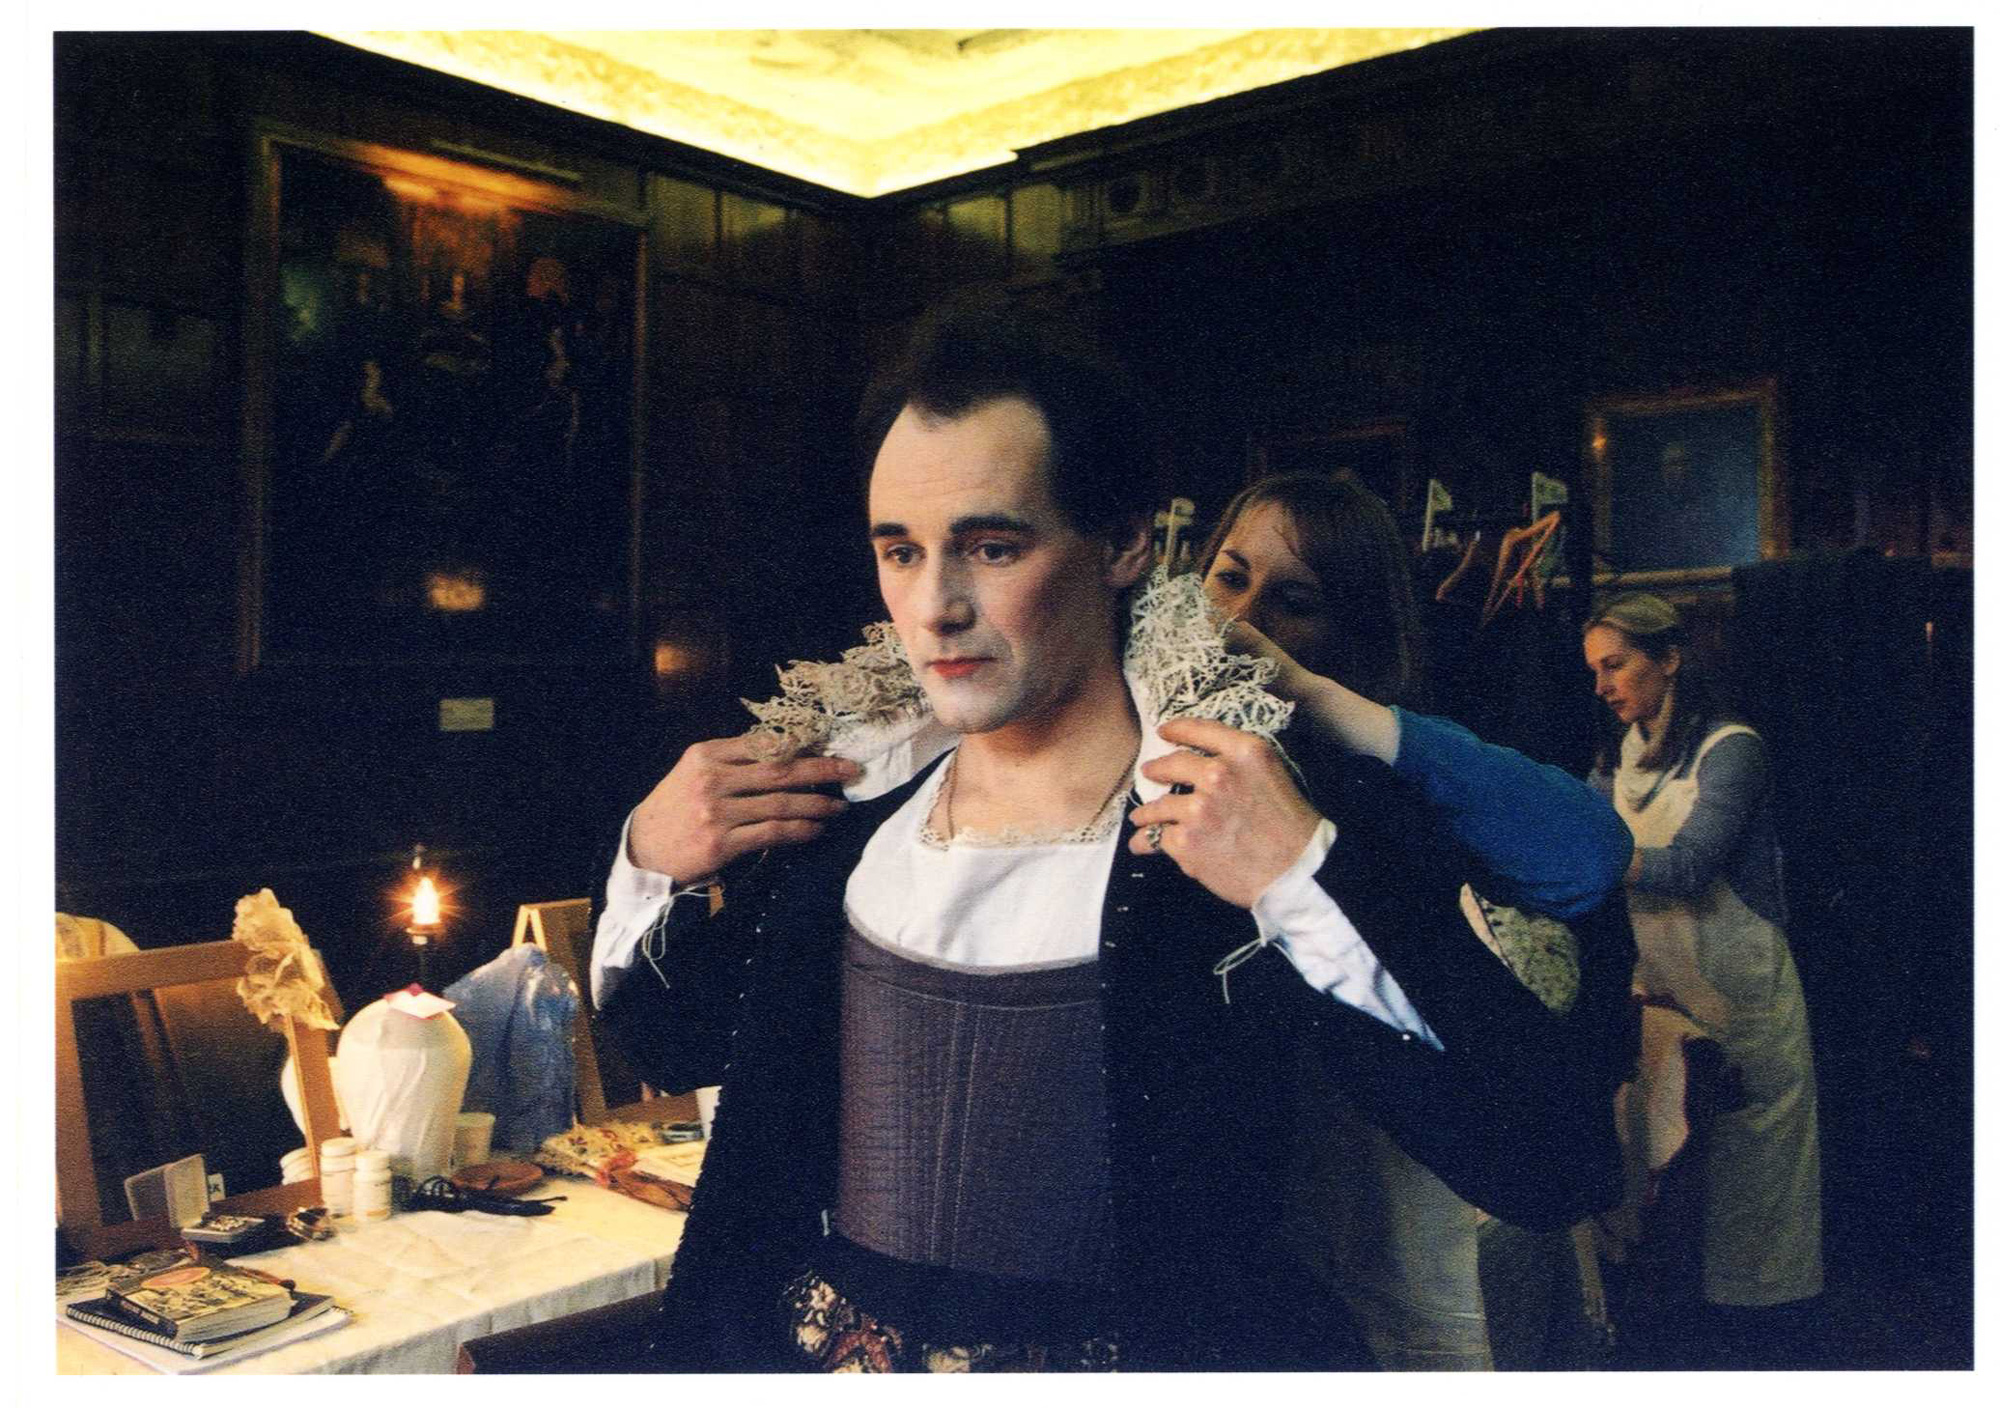 Photograph of Mark Rylance in Olivia costume in Shakespeare's Globe's production of Twelfth Night, 2002